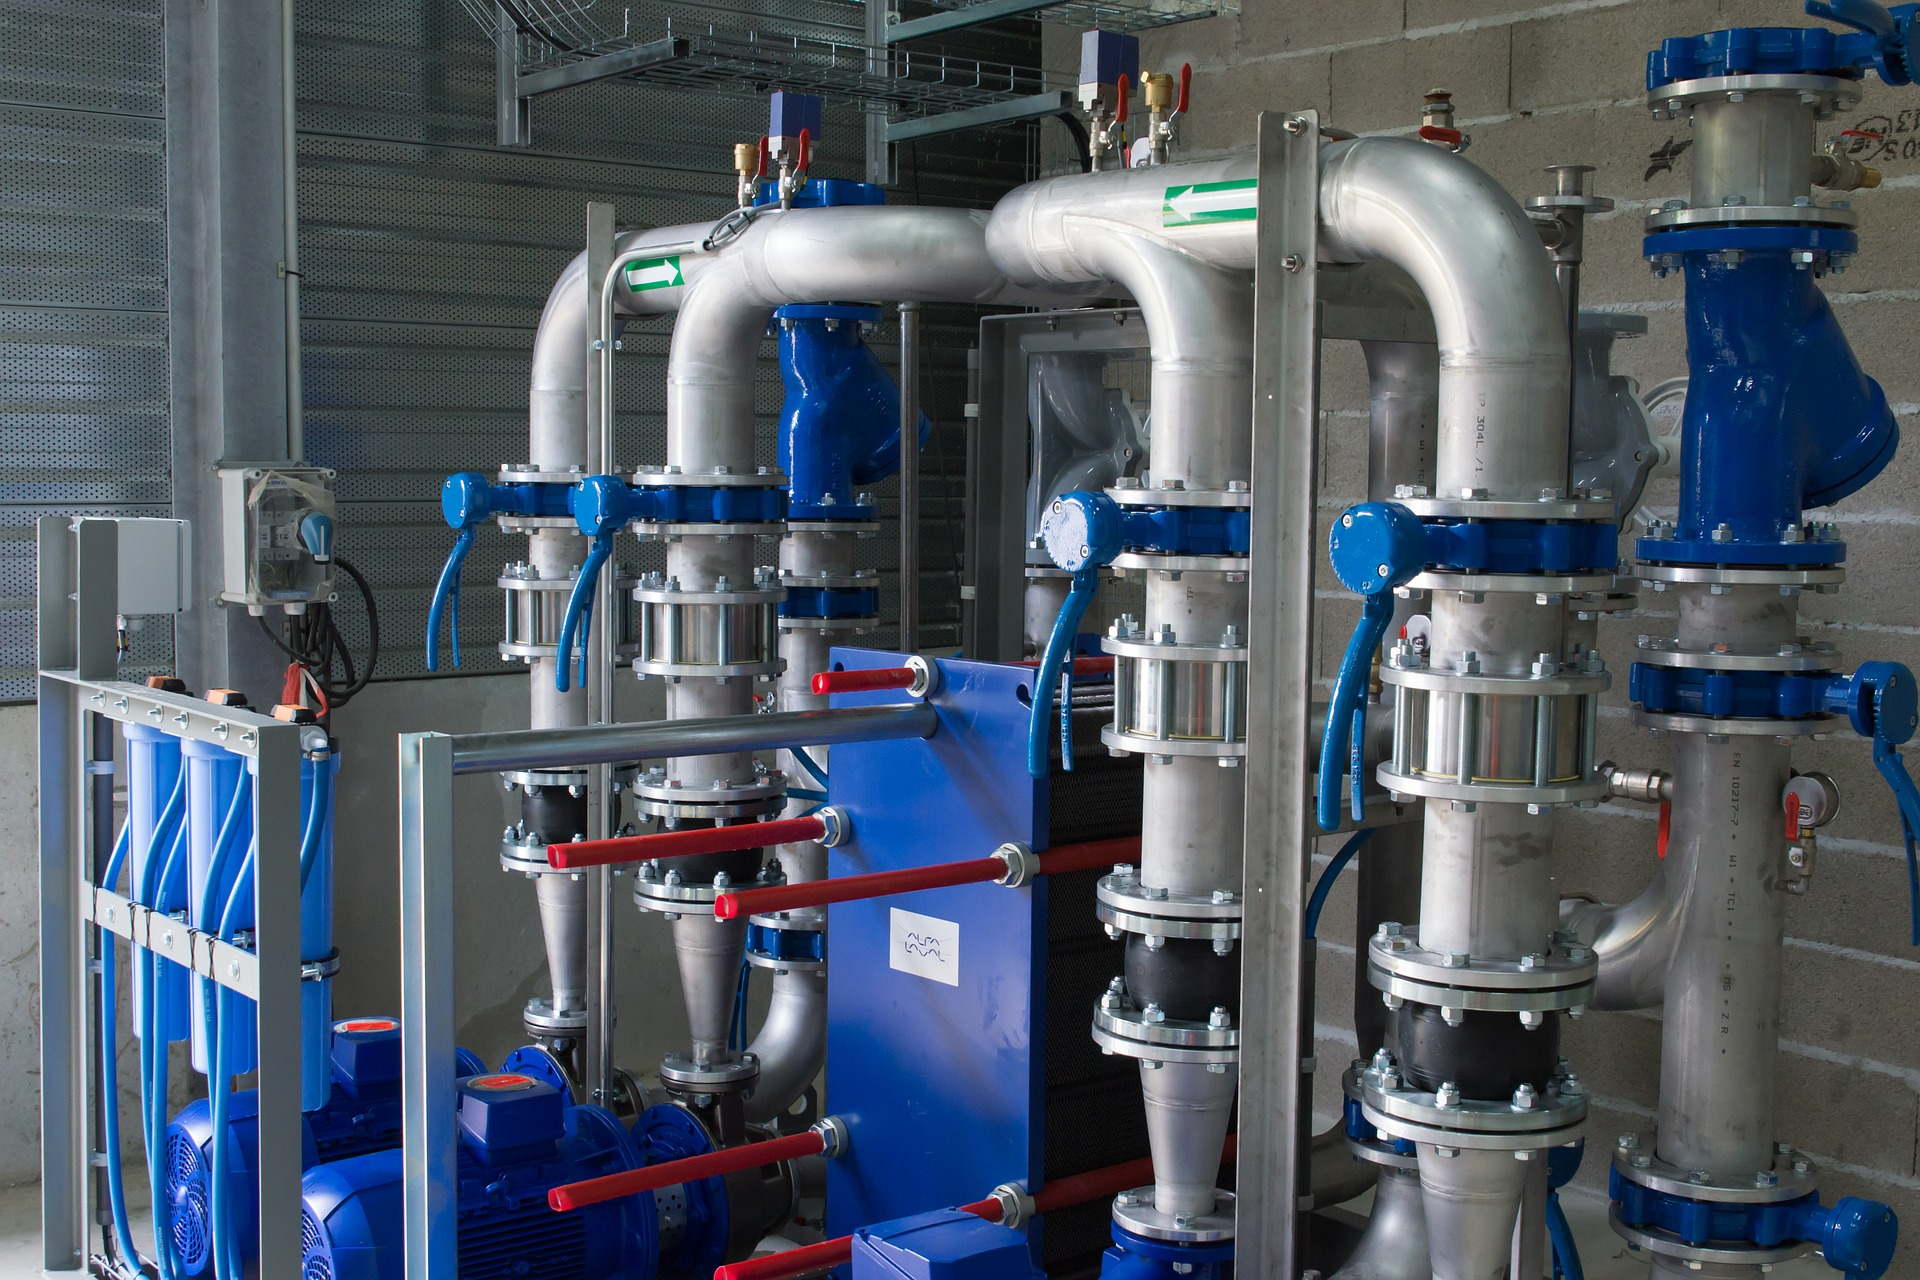 Image of pipes that are used to control fluid flows in a commercial setting - TAB Bank